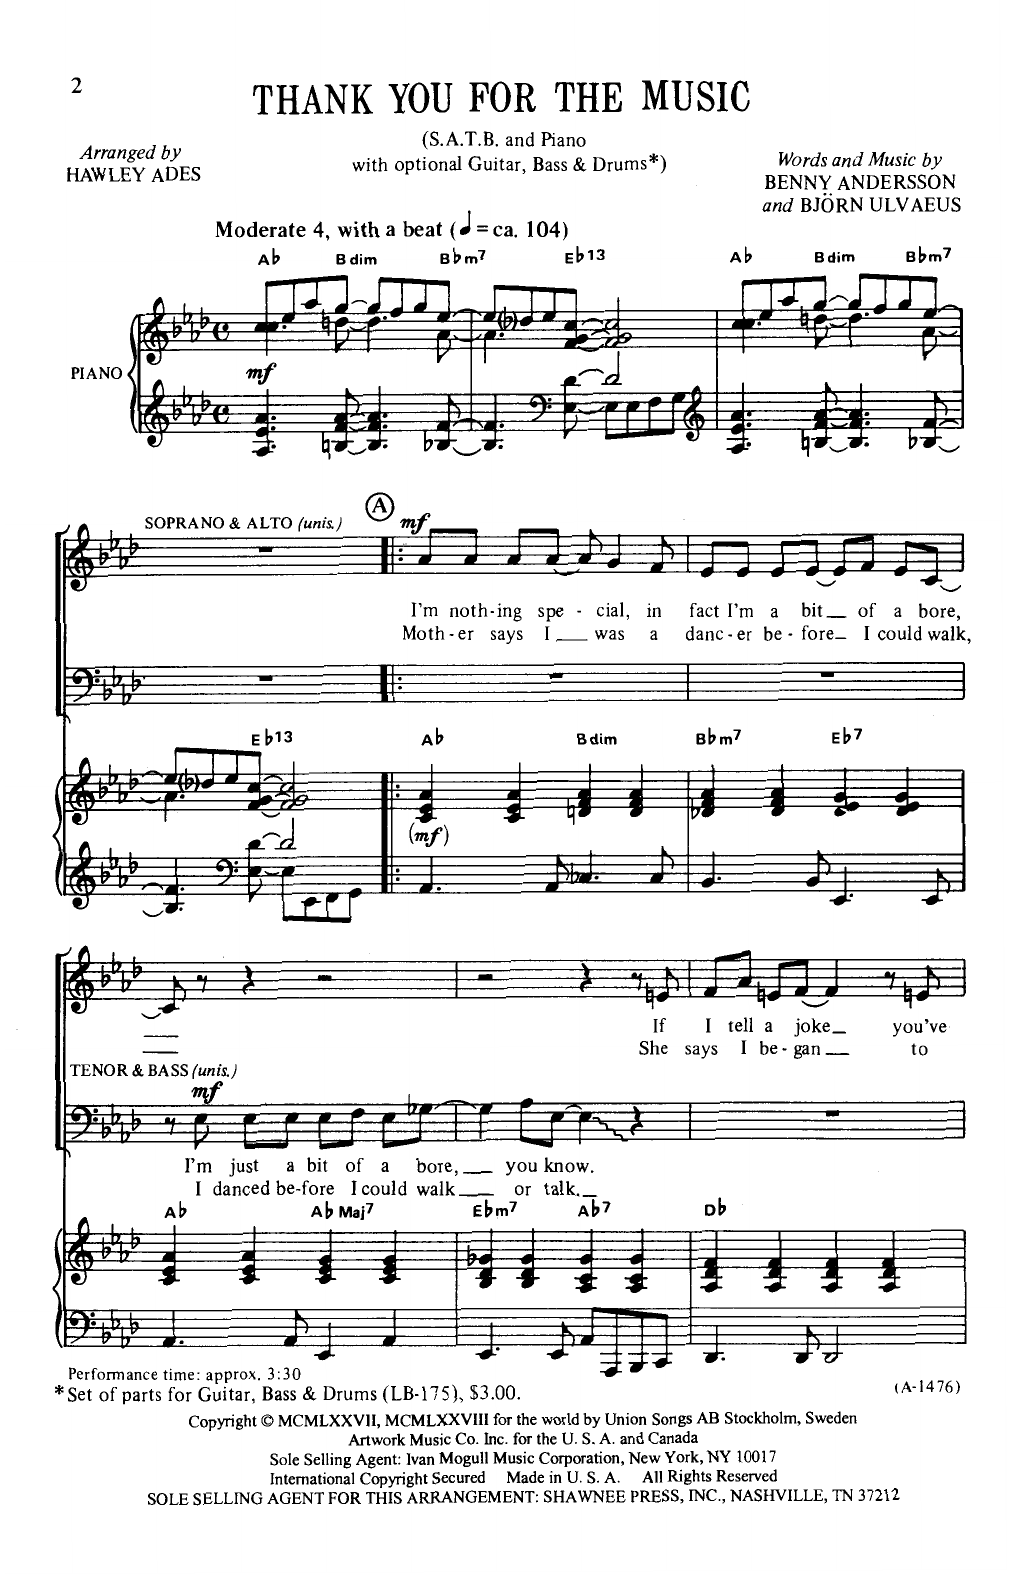 Thank You For The Music (arr. Hawley Ades) Sheet Music